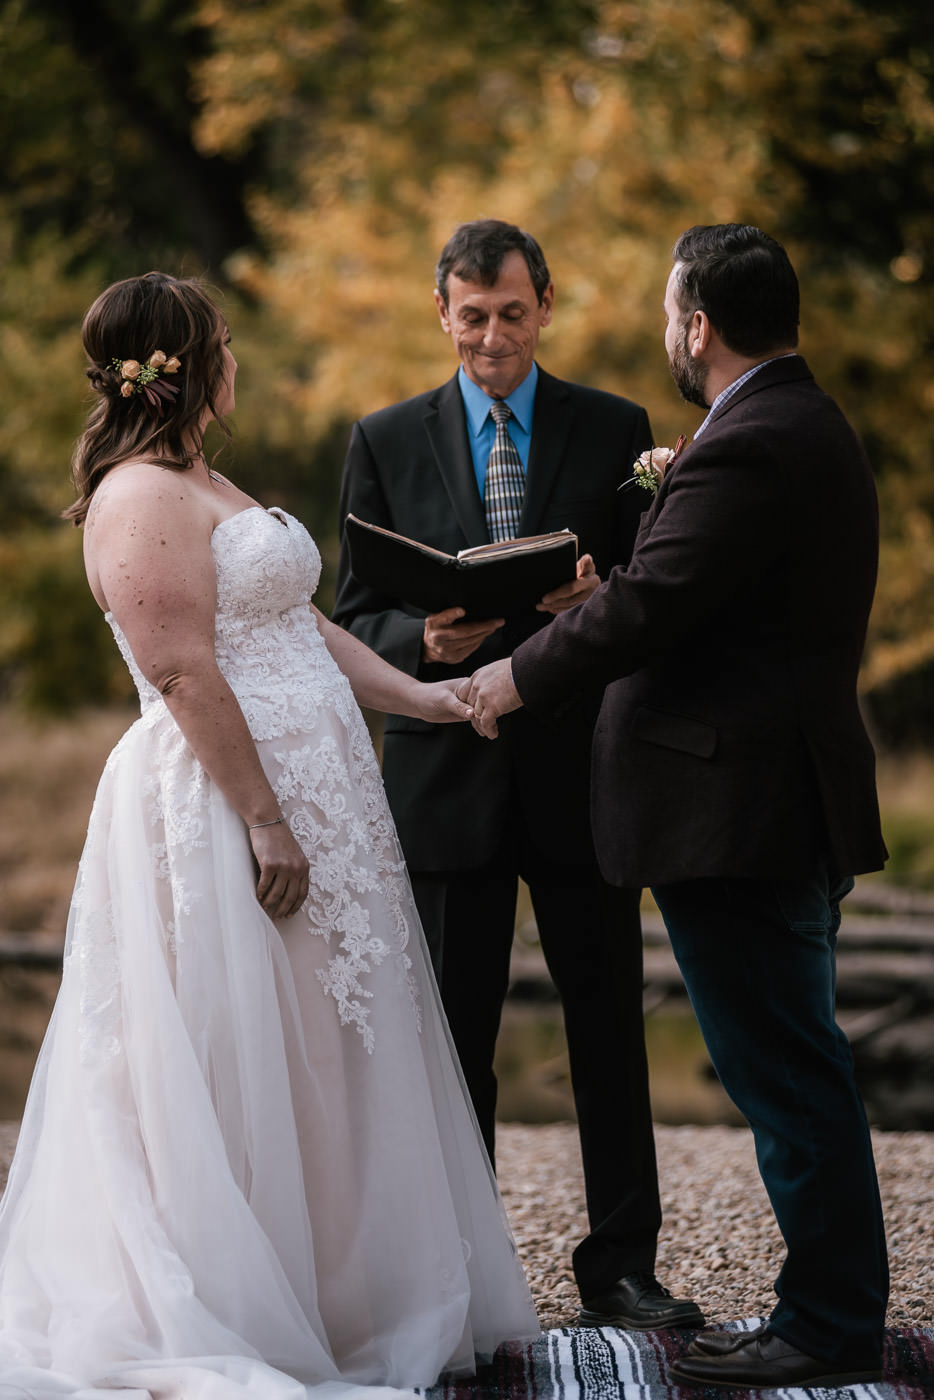 cathedral-beach-elopement-ceremony-yosemite-16.jpg